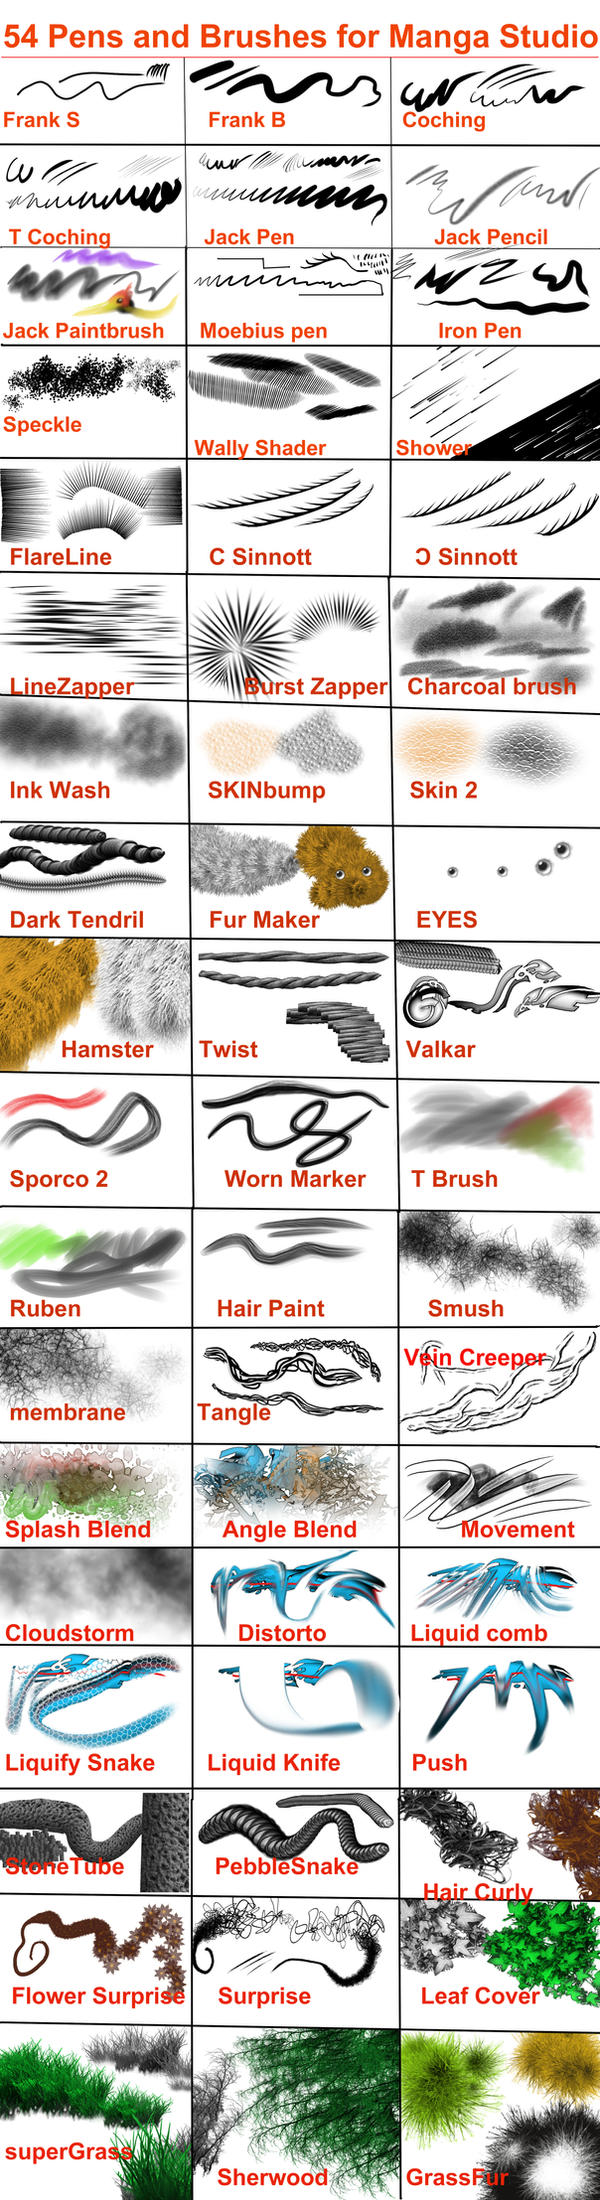 Manga studio downloadable brushes collection by toto